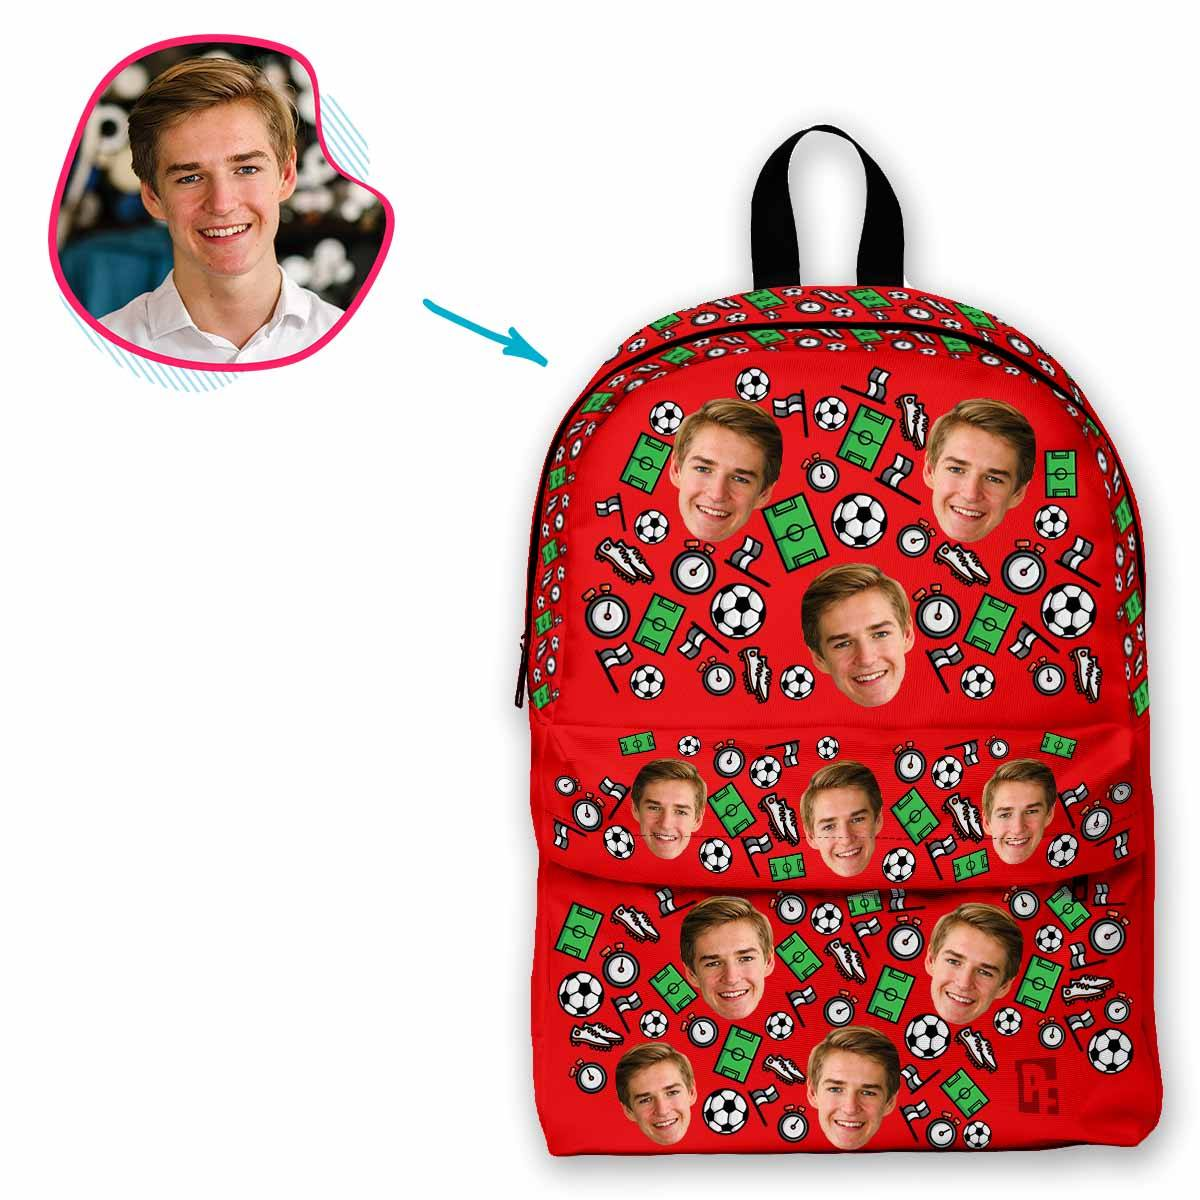 red Football classic backpack personalized with photo of face printed on it